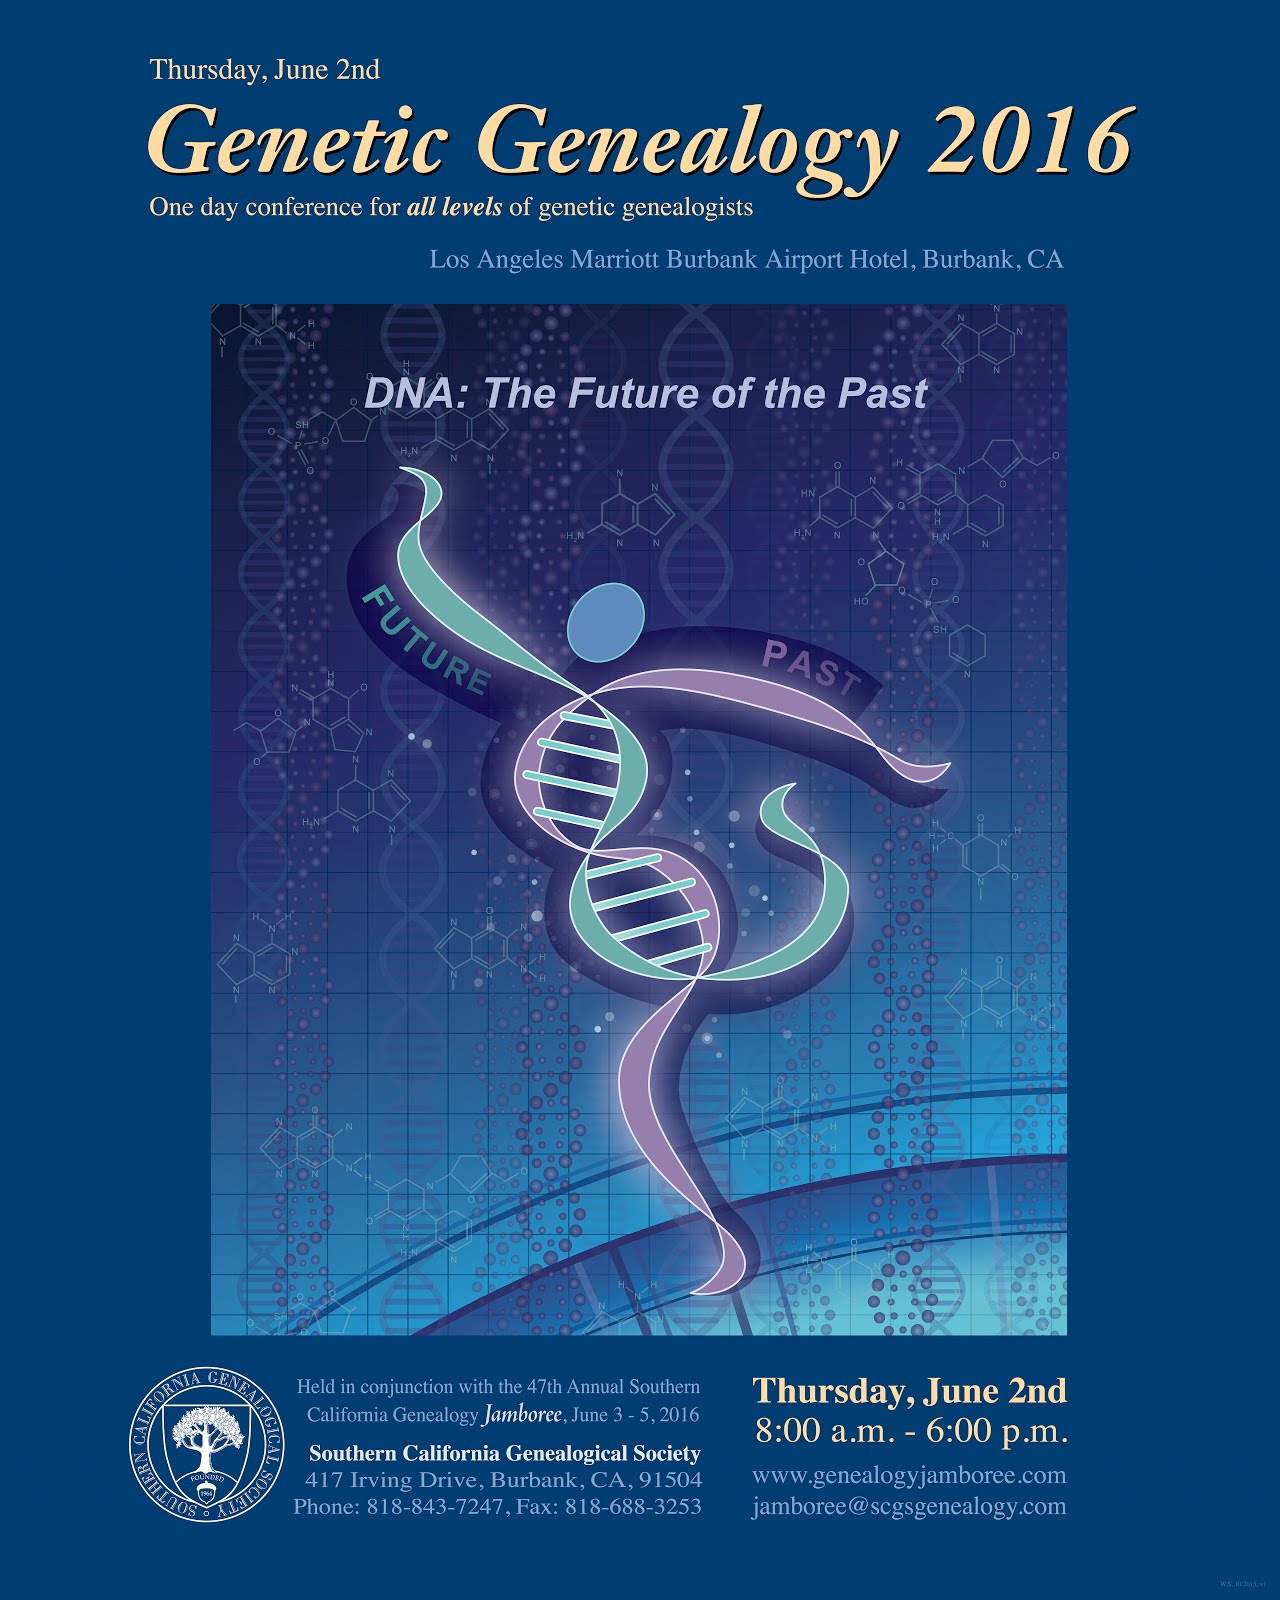 The Future of the Past: Genetic Genealogy 2016